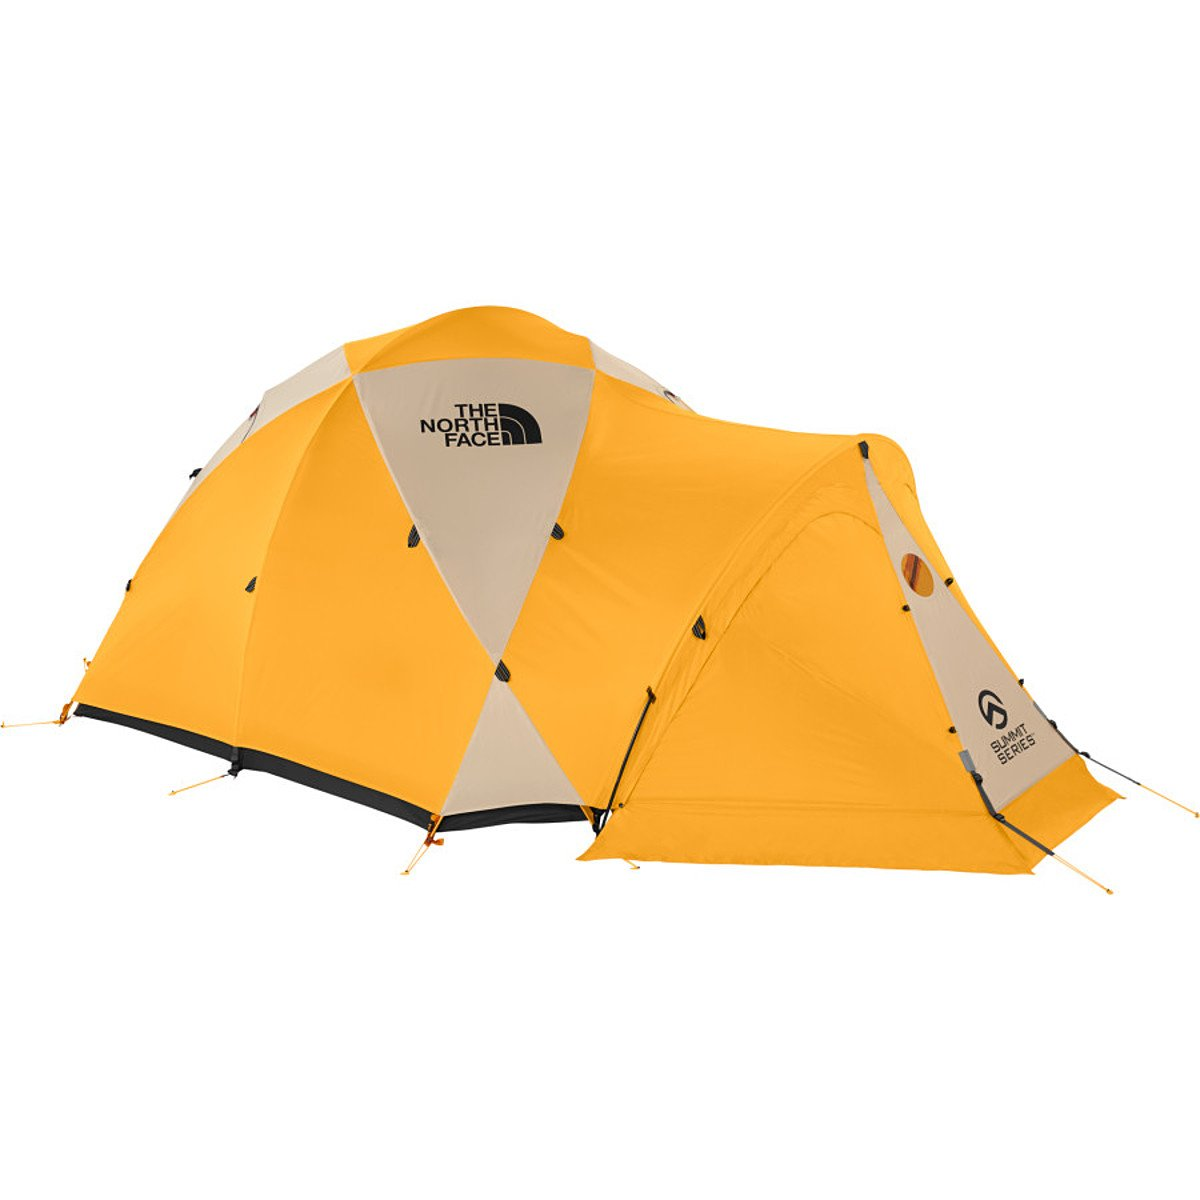 - Bastion 4 - 4 Person - 4 Season Tent Amazon.co.uk Sports u0026 Outdoors  sc 1 st  Amazon UK & Bastion 4 - 4 Person - 4 Season Tent: Amazon.co.uk: Sports u0026 Outdoors